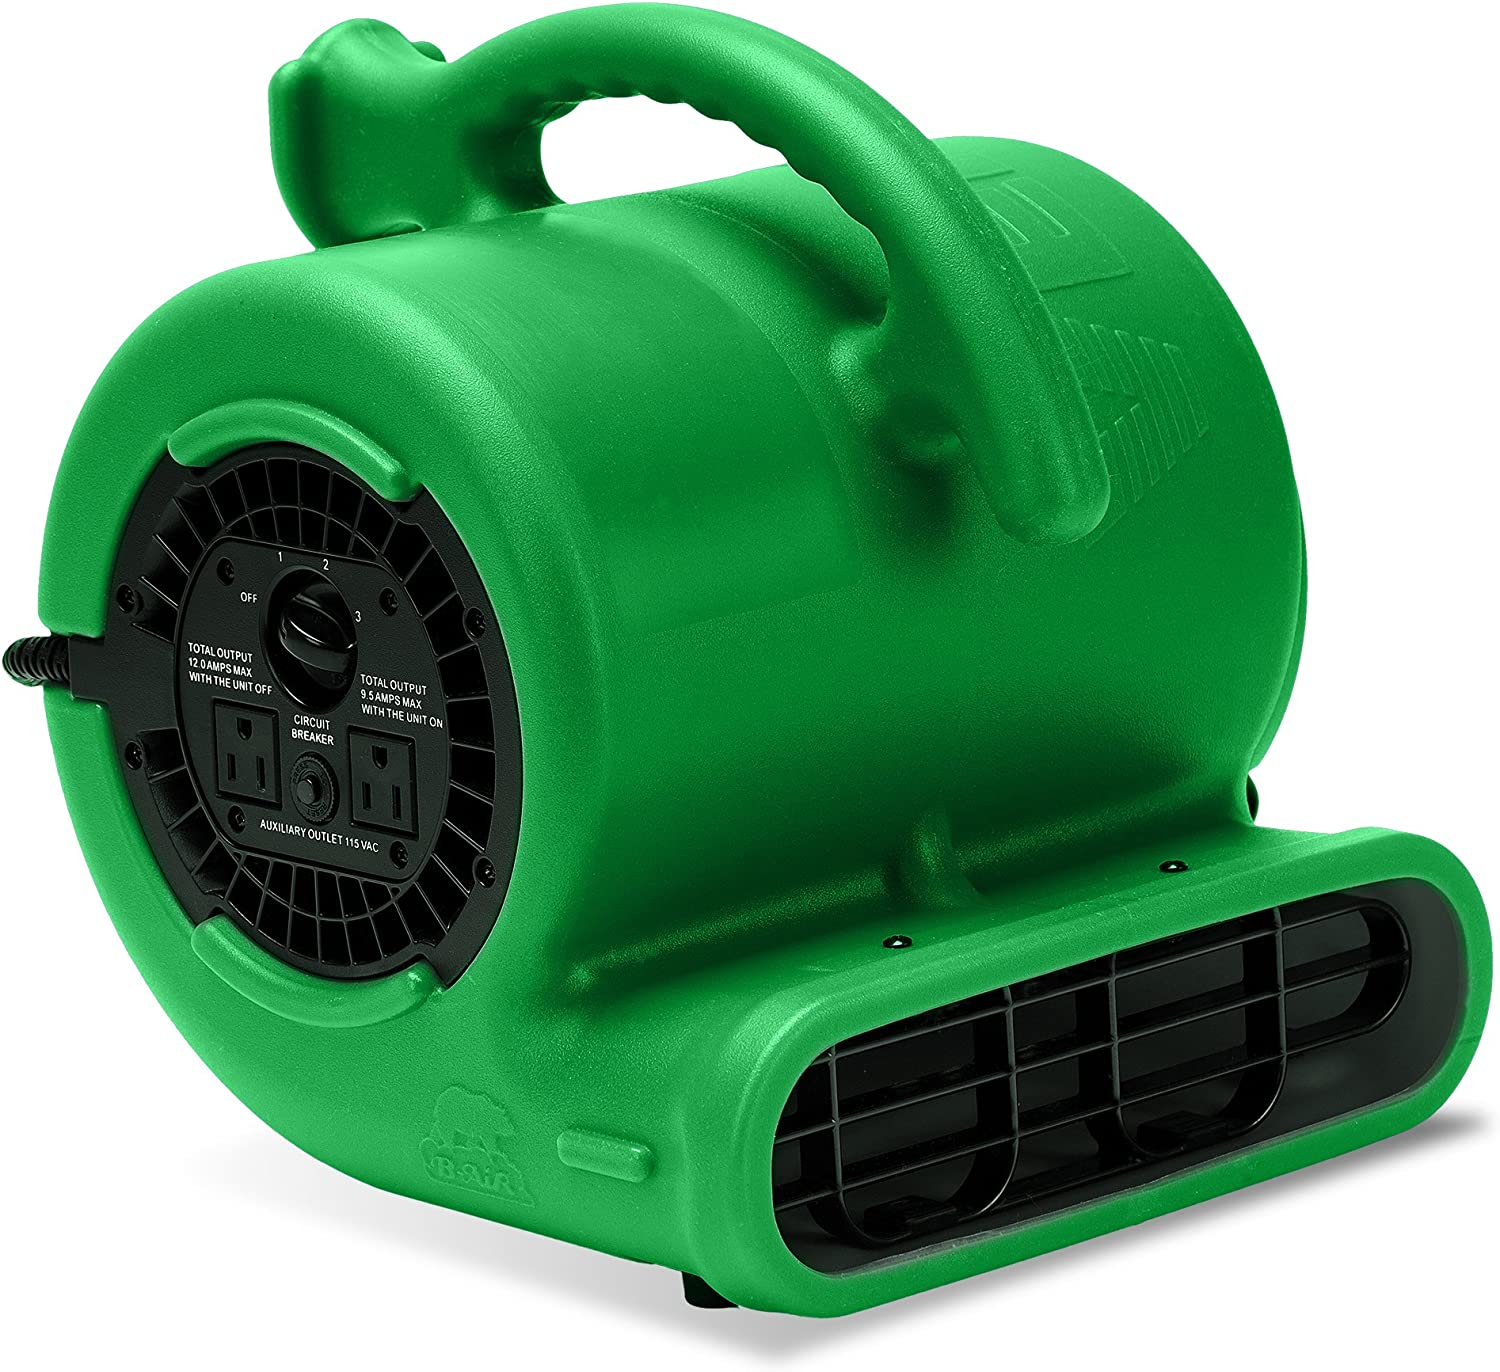 B-Air VP-25 1/4HP Blower Floor Fan, High Velocity Heavy Duty Industrial Air Mover, Utility Electric Carpet Dryer, Water Damage Equipment, Green